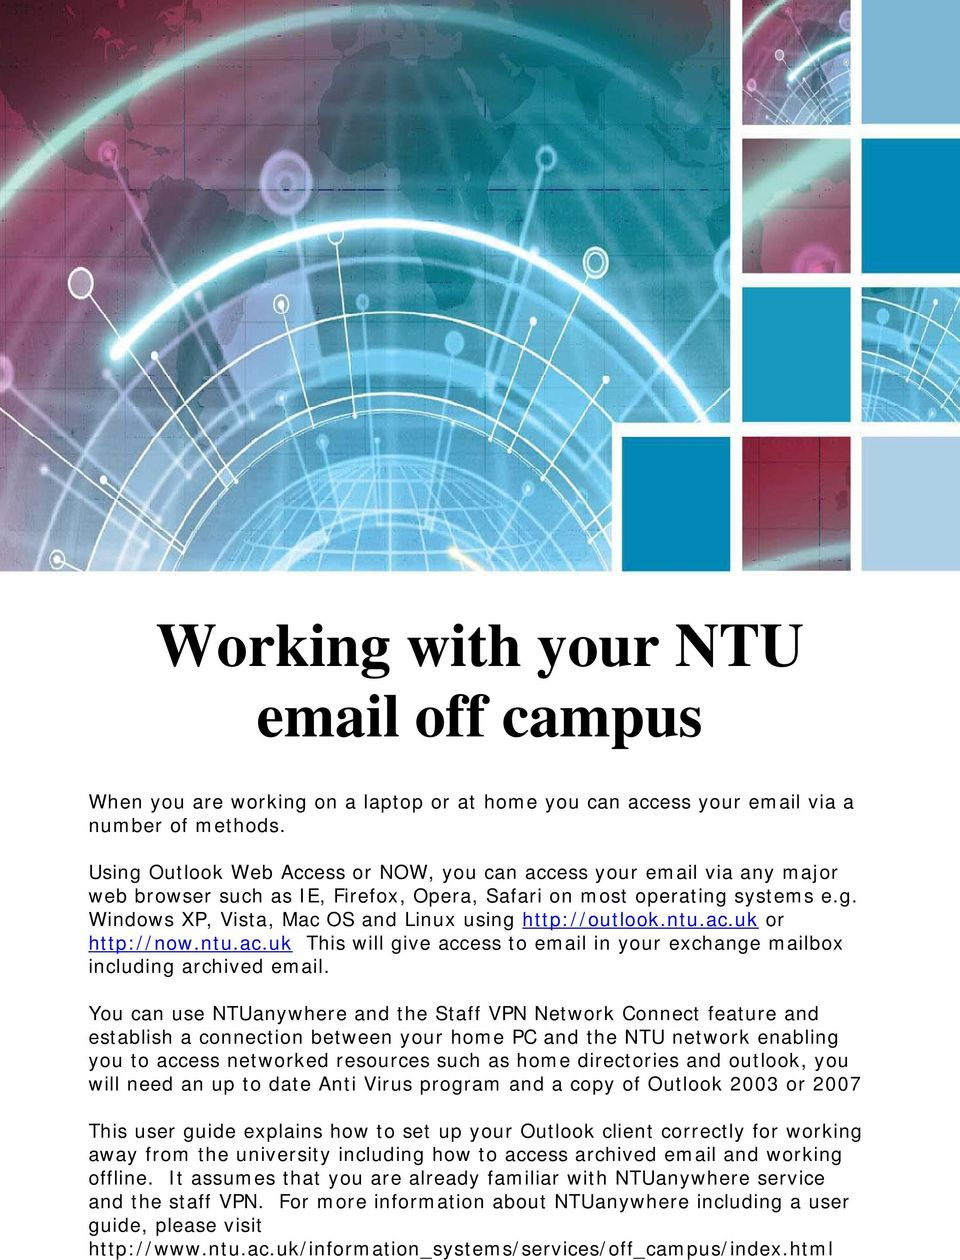 ntu.ac.uk or http://now.ntu.ac.uk This will give access to email in your exchange mailbox including archived email.